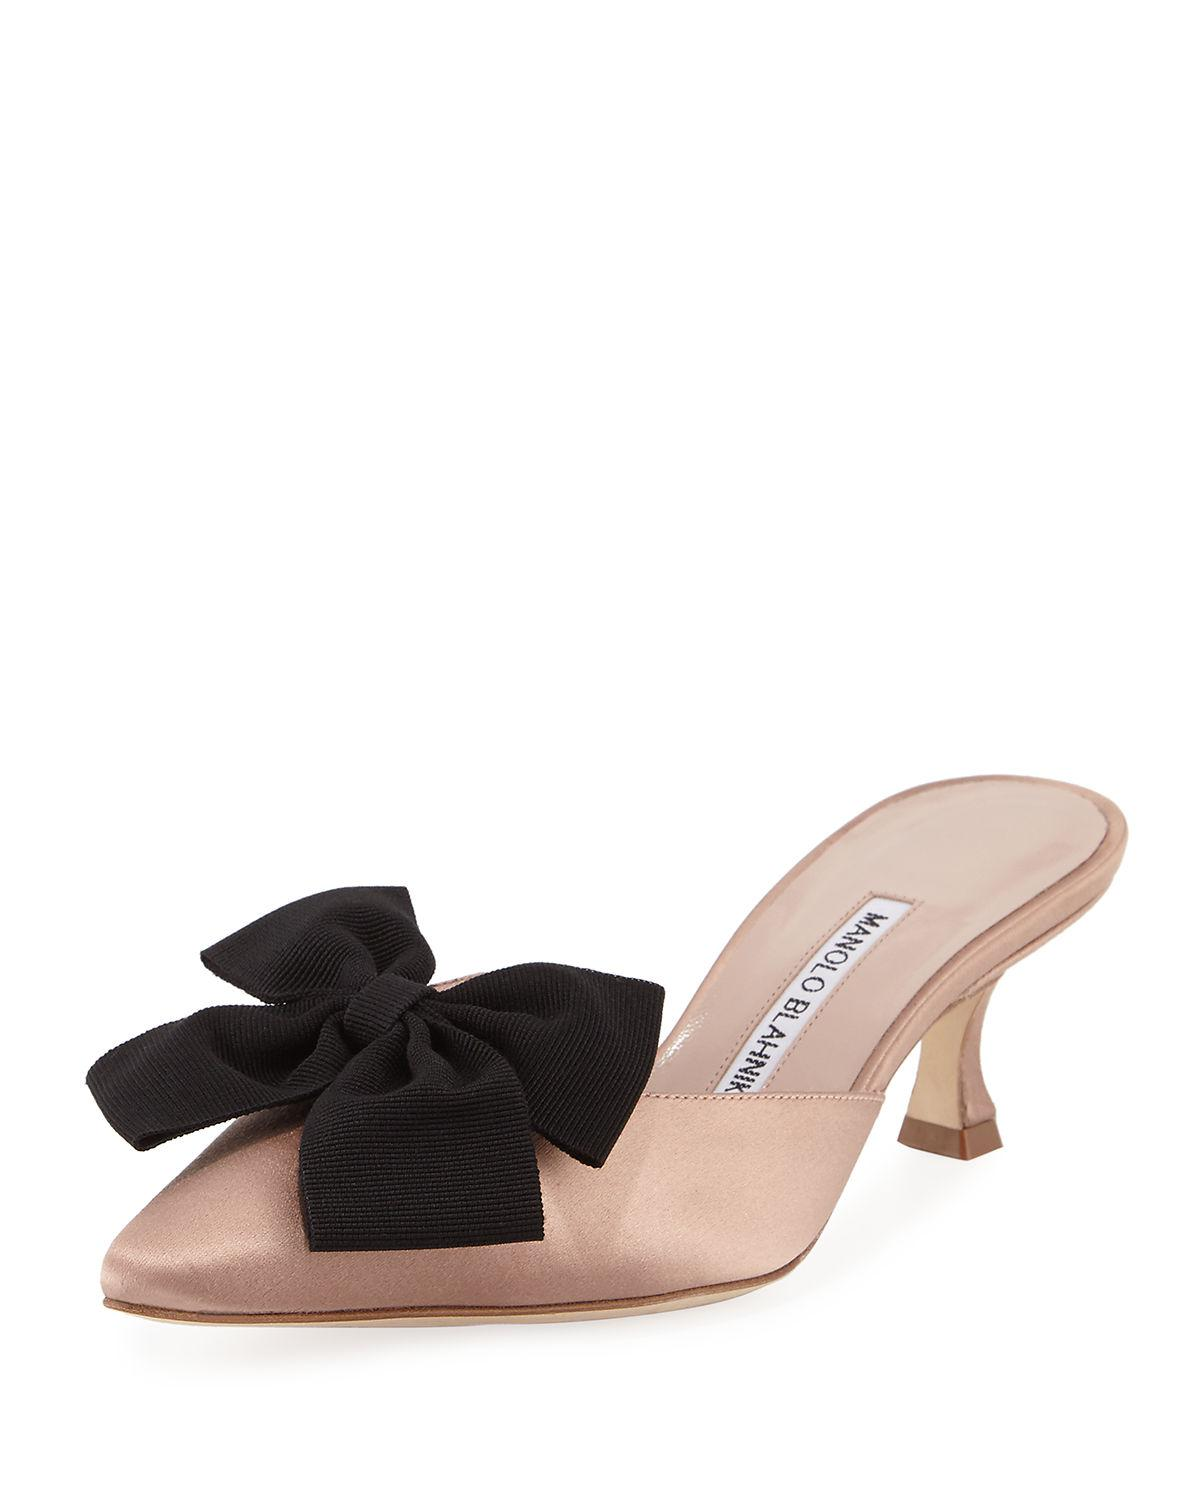 sast online cost cheap price Manolo Blahnik Metallic Bow-Adorned Sandals Manchester cheap price official cheap online gM2jJiMF4